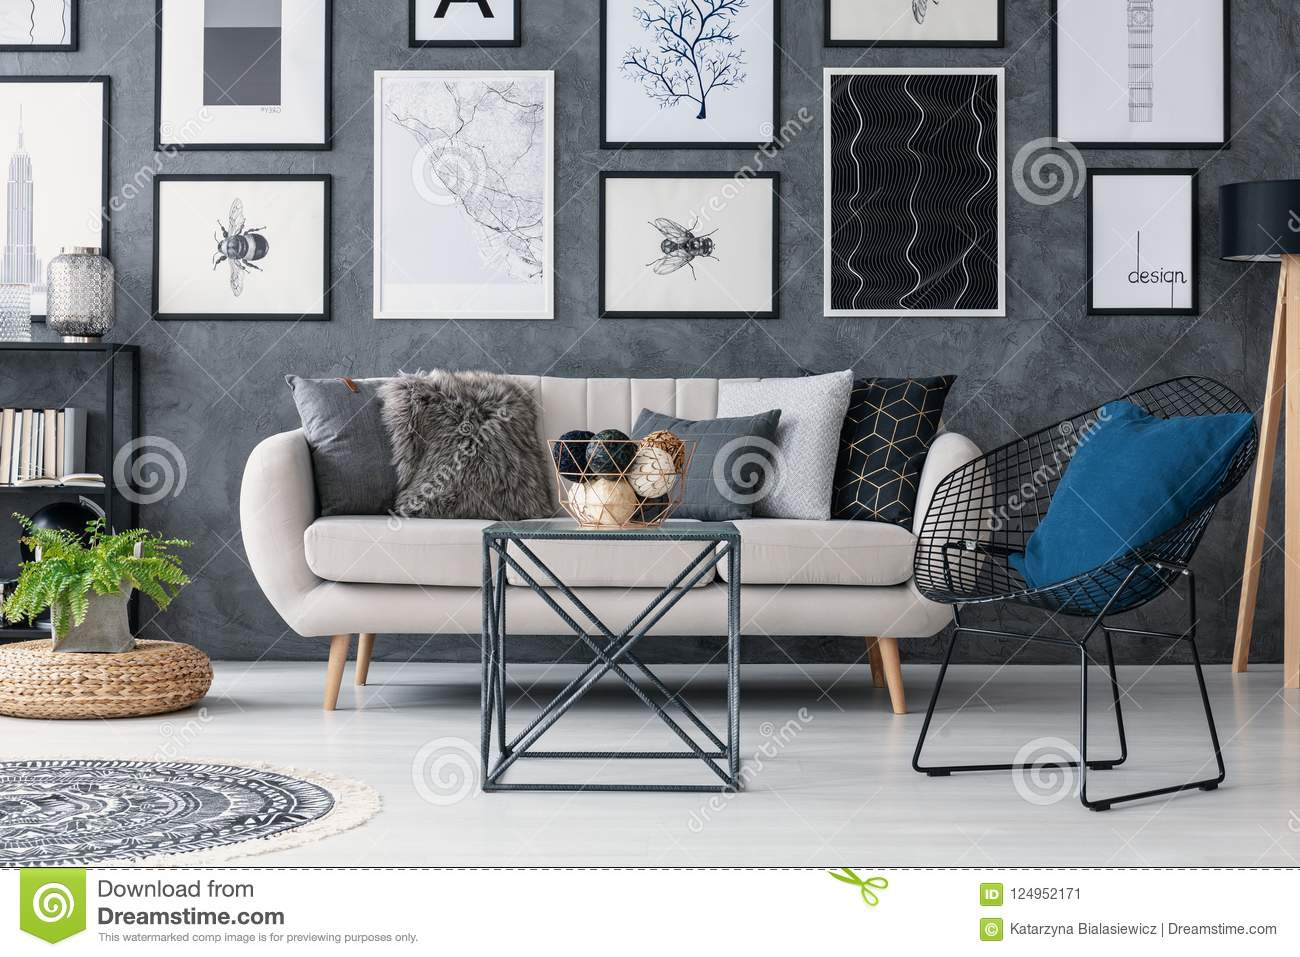 Download Plant On Pouf Next To Sofa In Grey Living Room Interior With  Table, Armchair